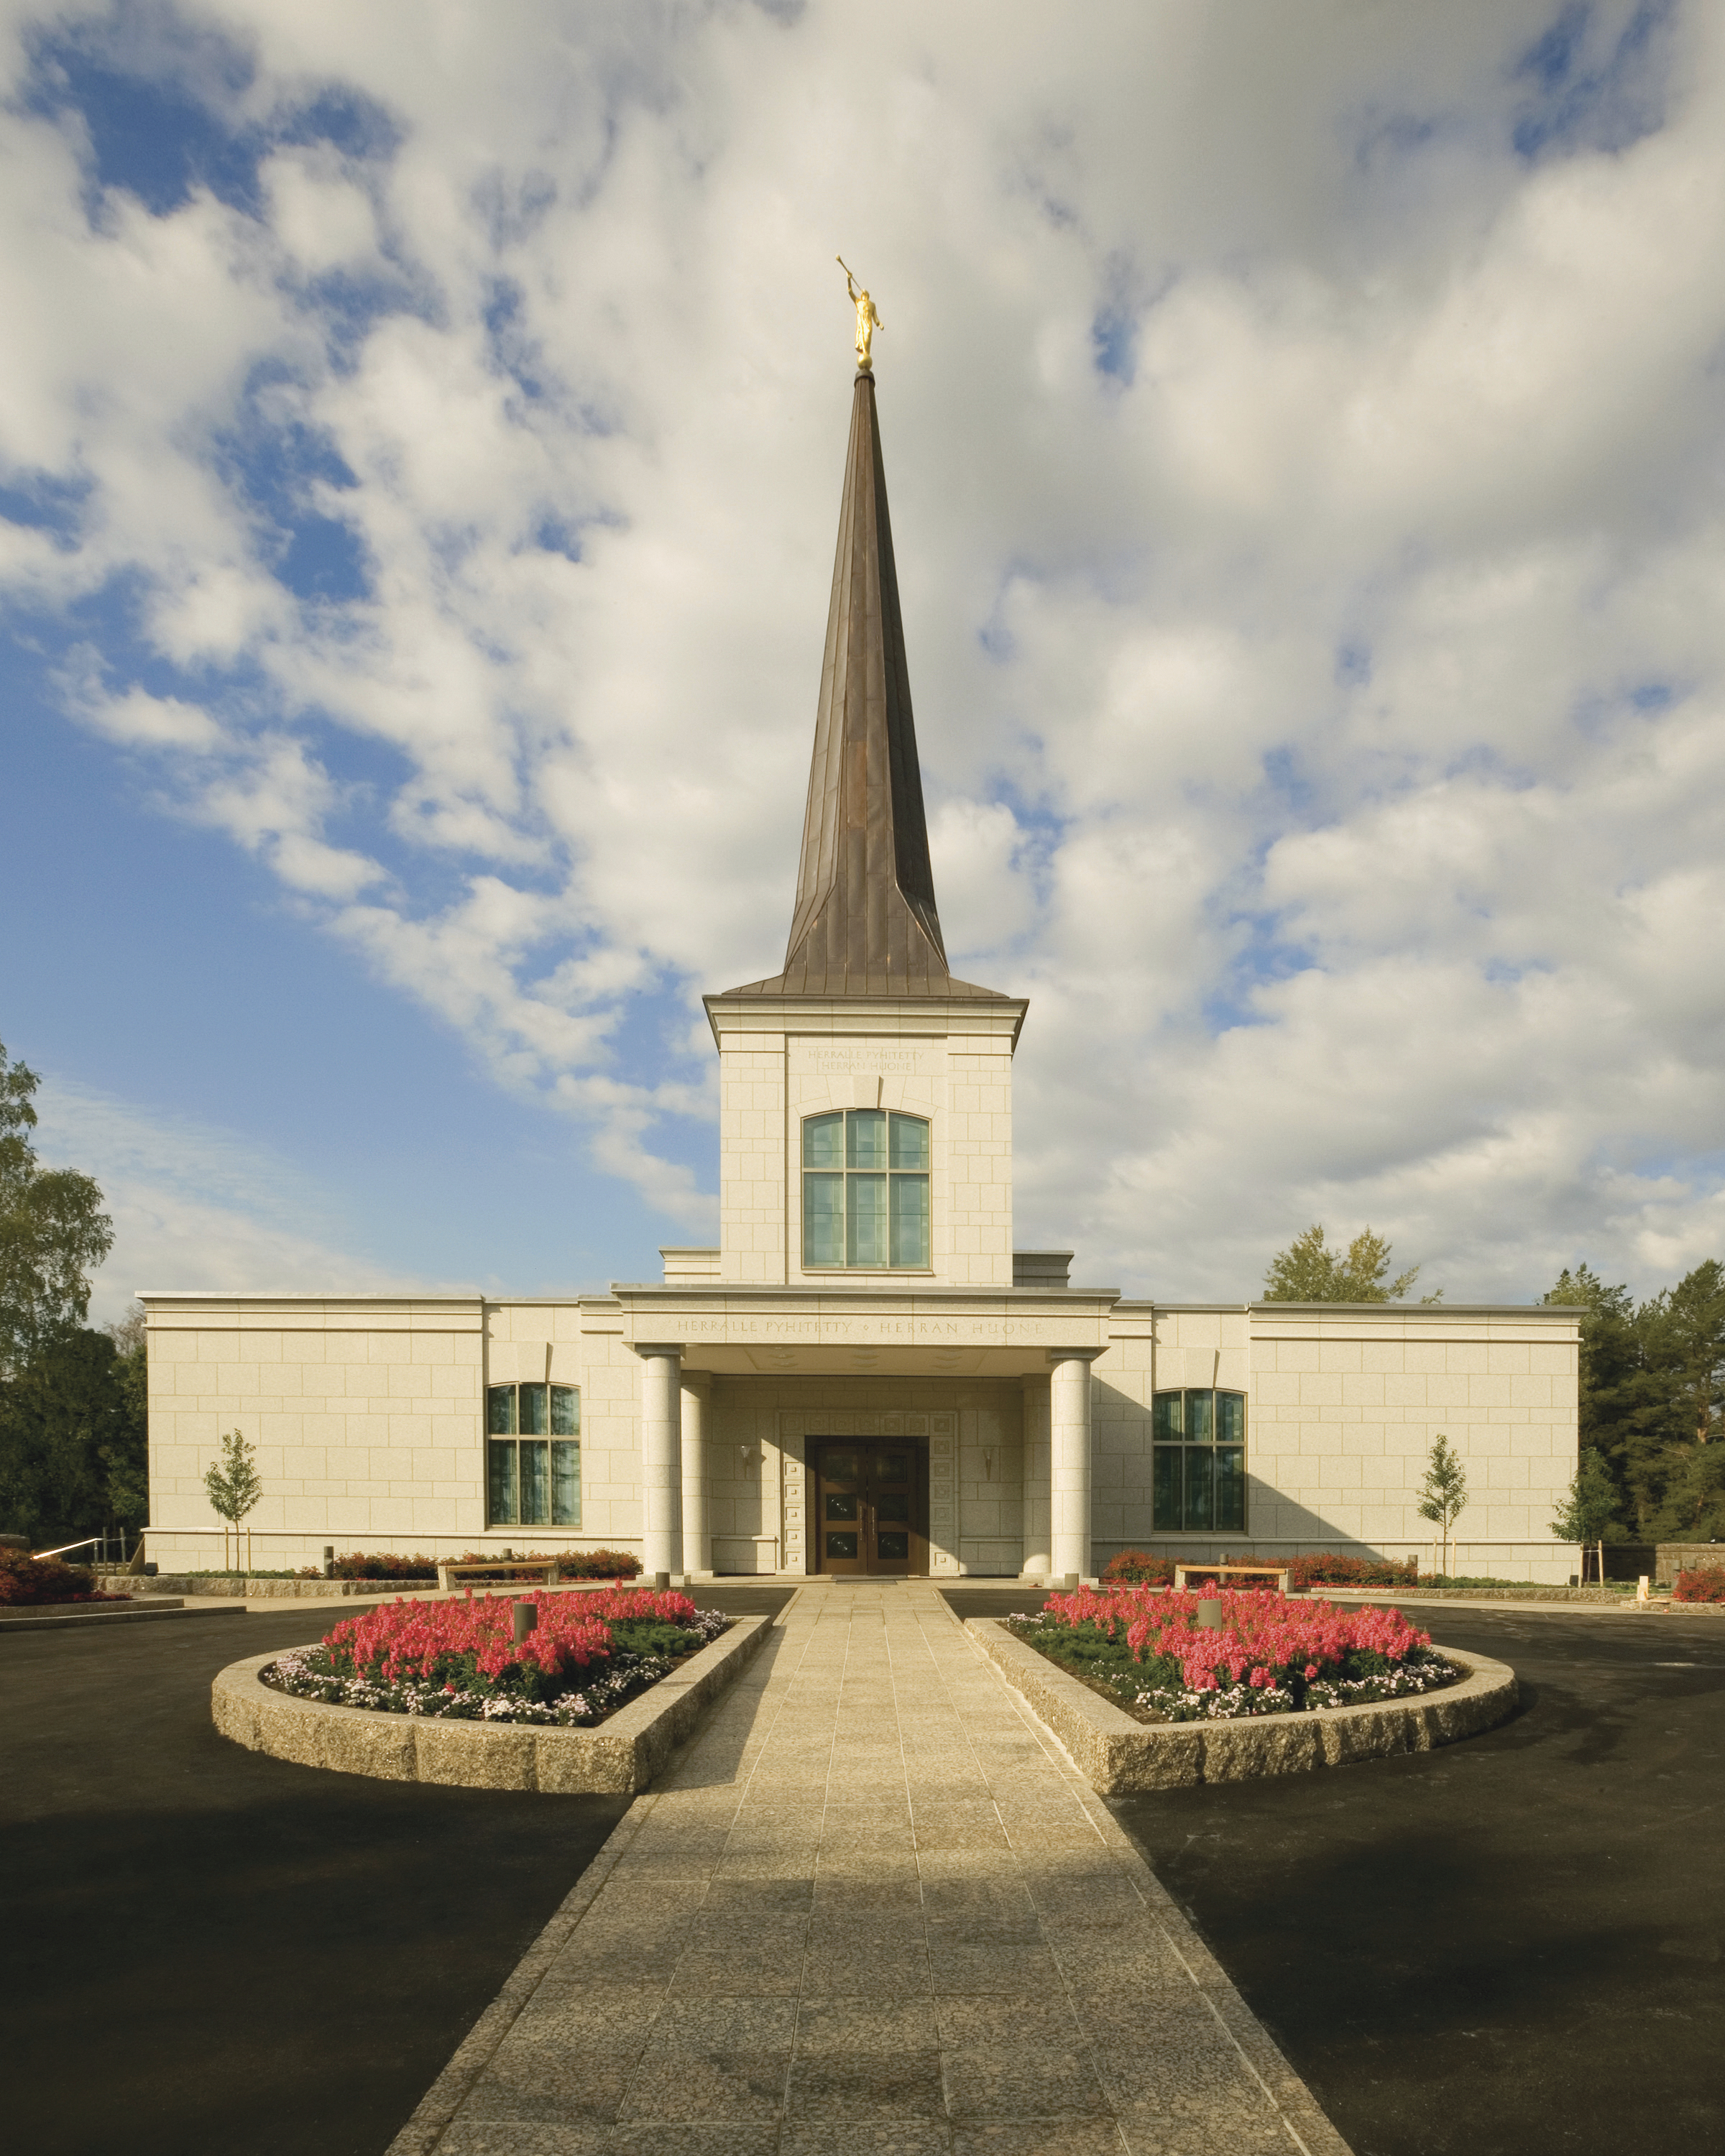 The front entrance to the Helsinki Finland Temple.